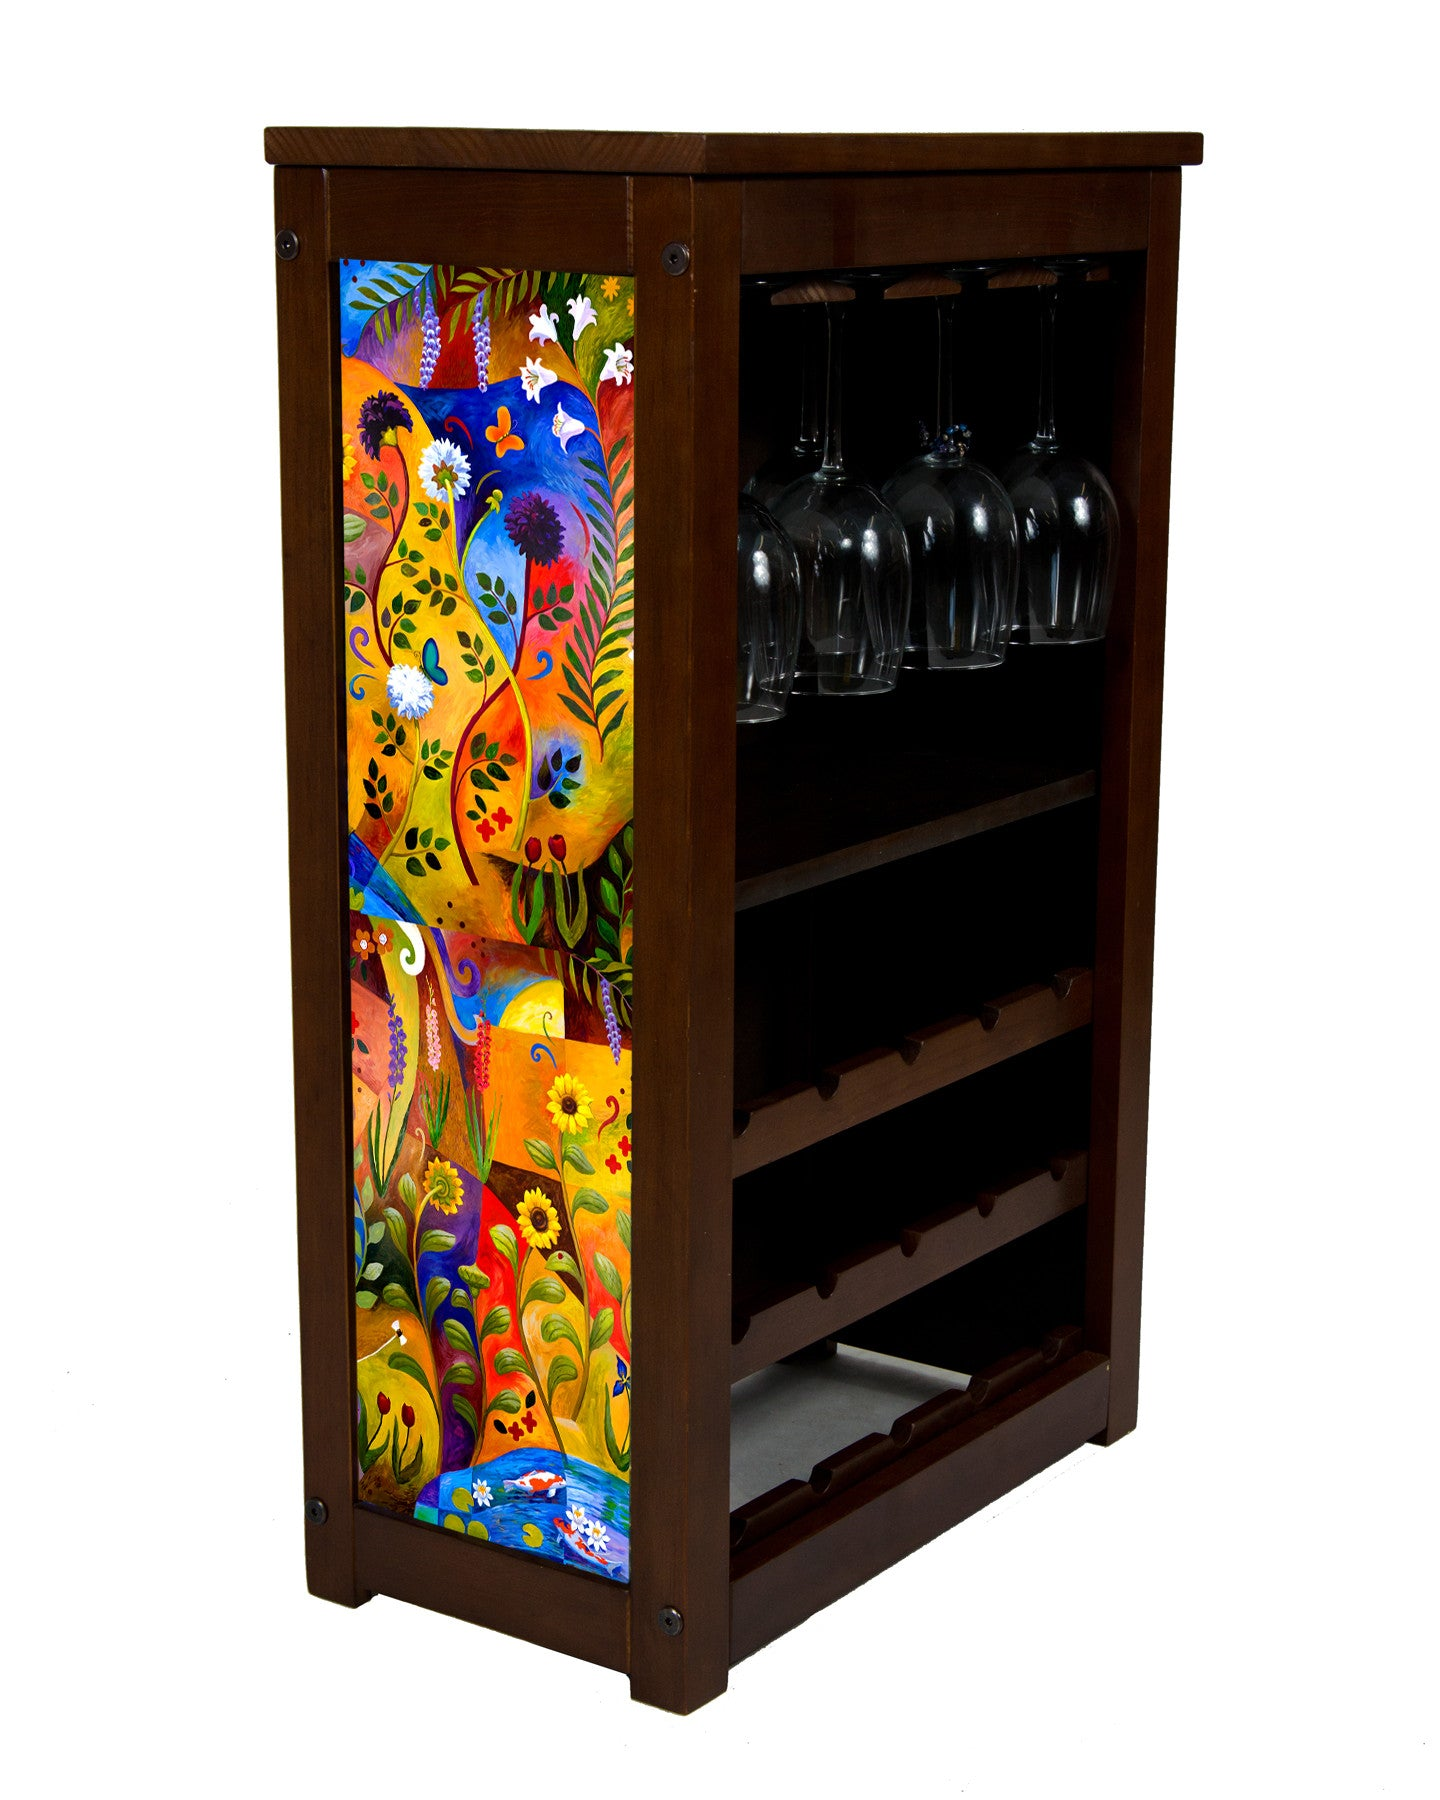 Garden of healing wine cabinet by Kim Drew